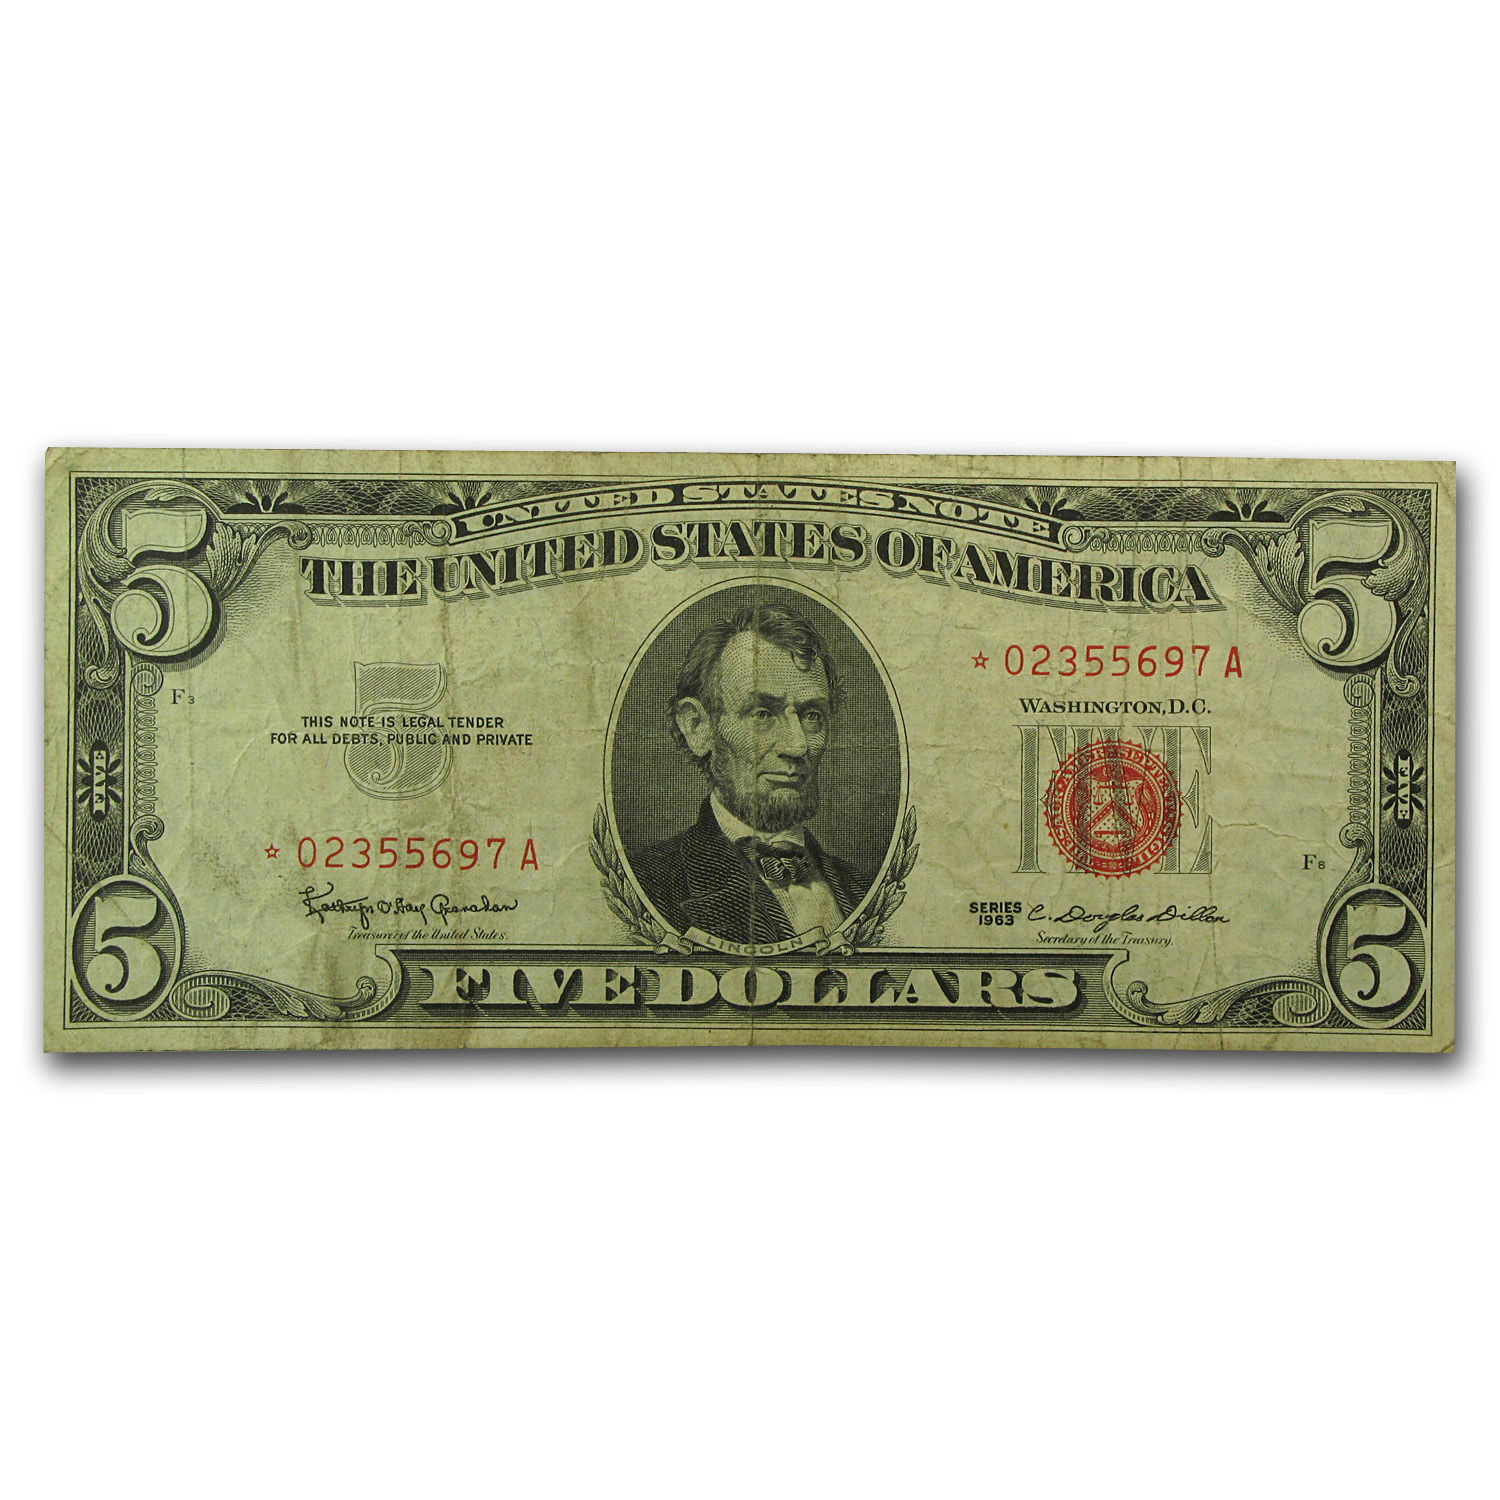 1963* $5.00 U.S. Note Red Seal Fine (Star Note)